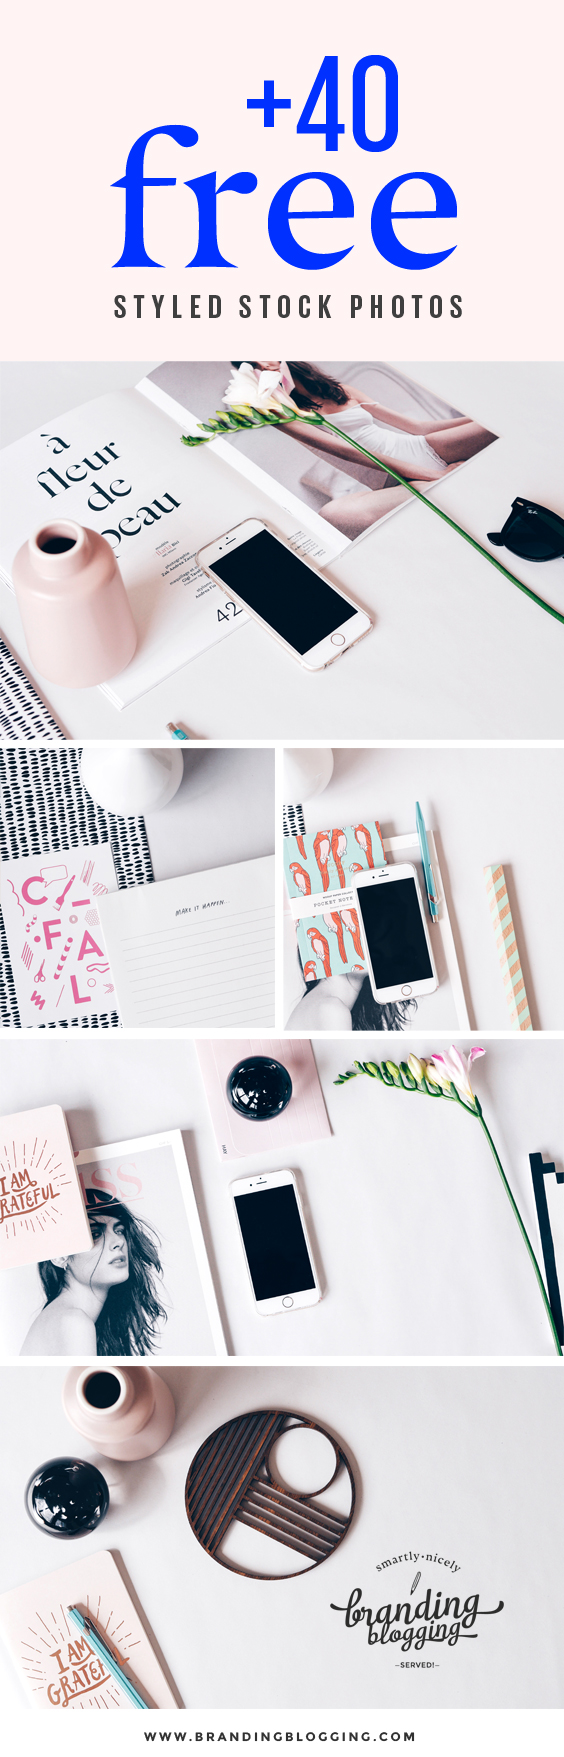 40 free awesome styled stock photos for bloggers & creative entrepreneurs